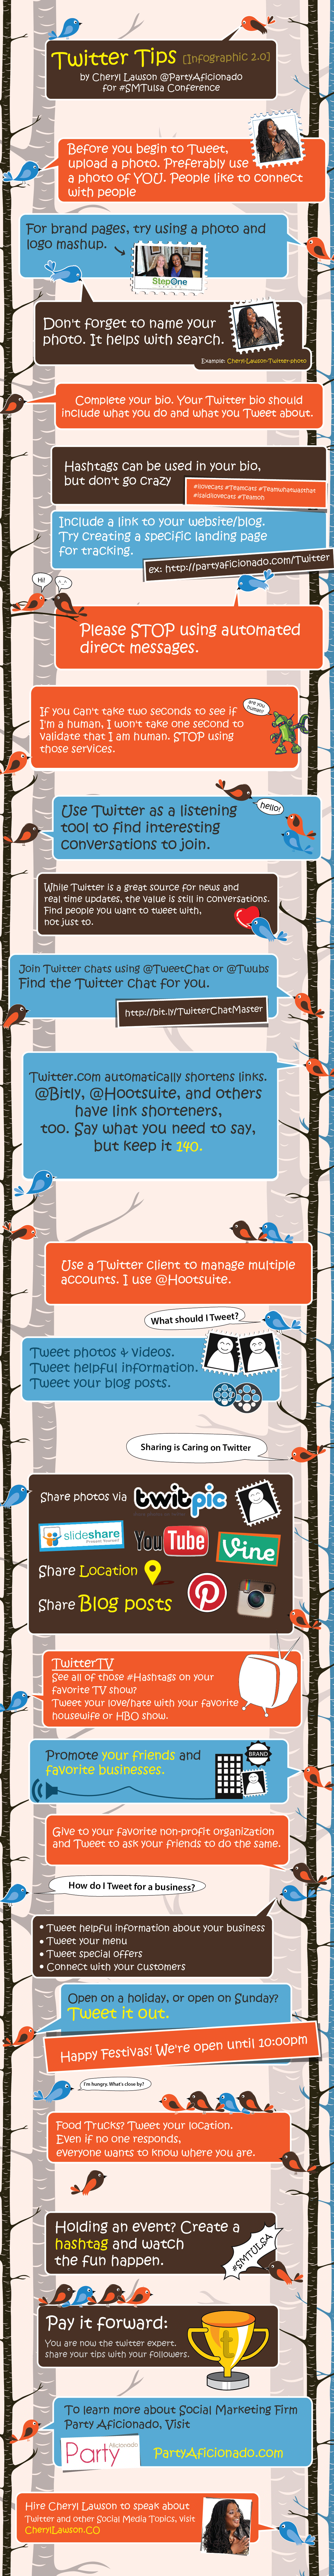 how-to-get-started-with-twitter